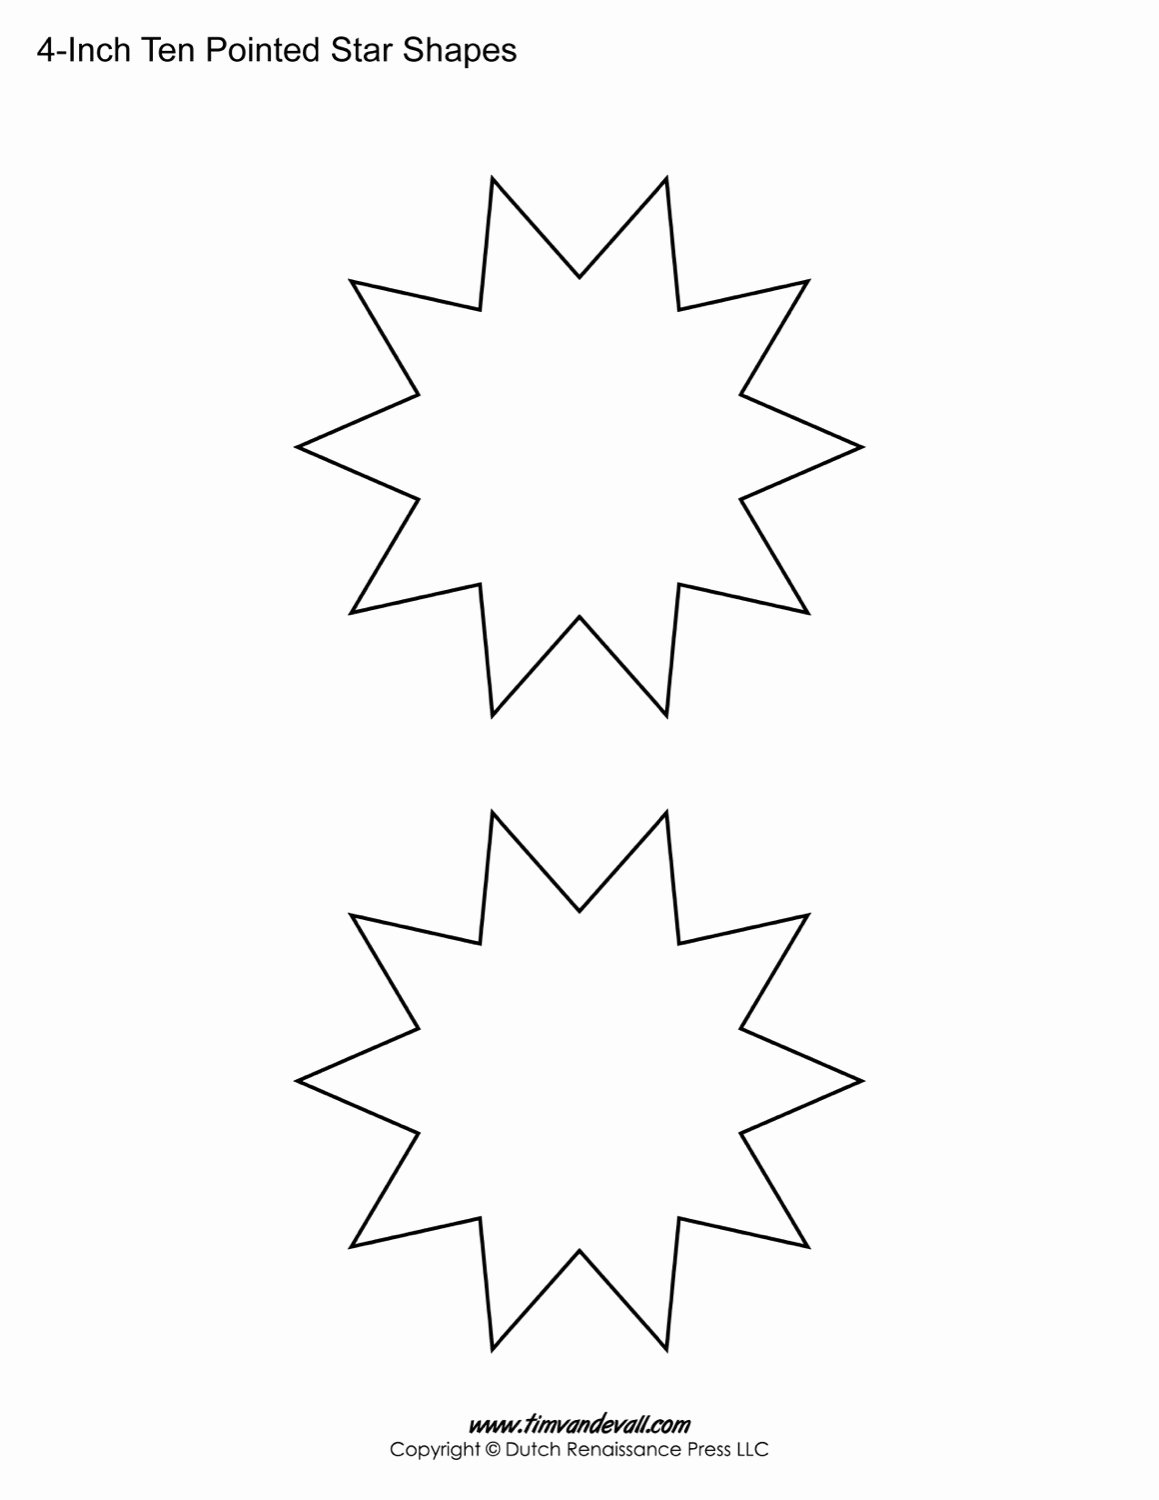 10 Inch Star Template Elegant Blank Ten Pointed Star Shapes